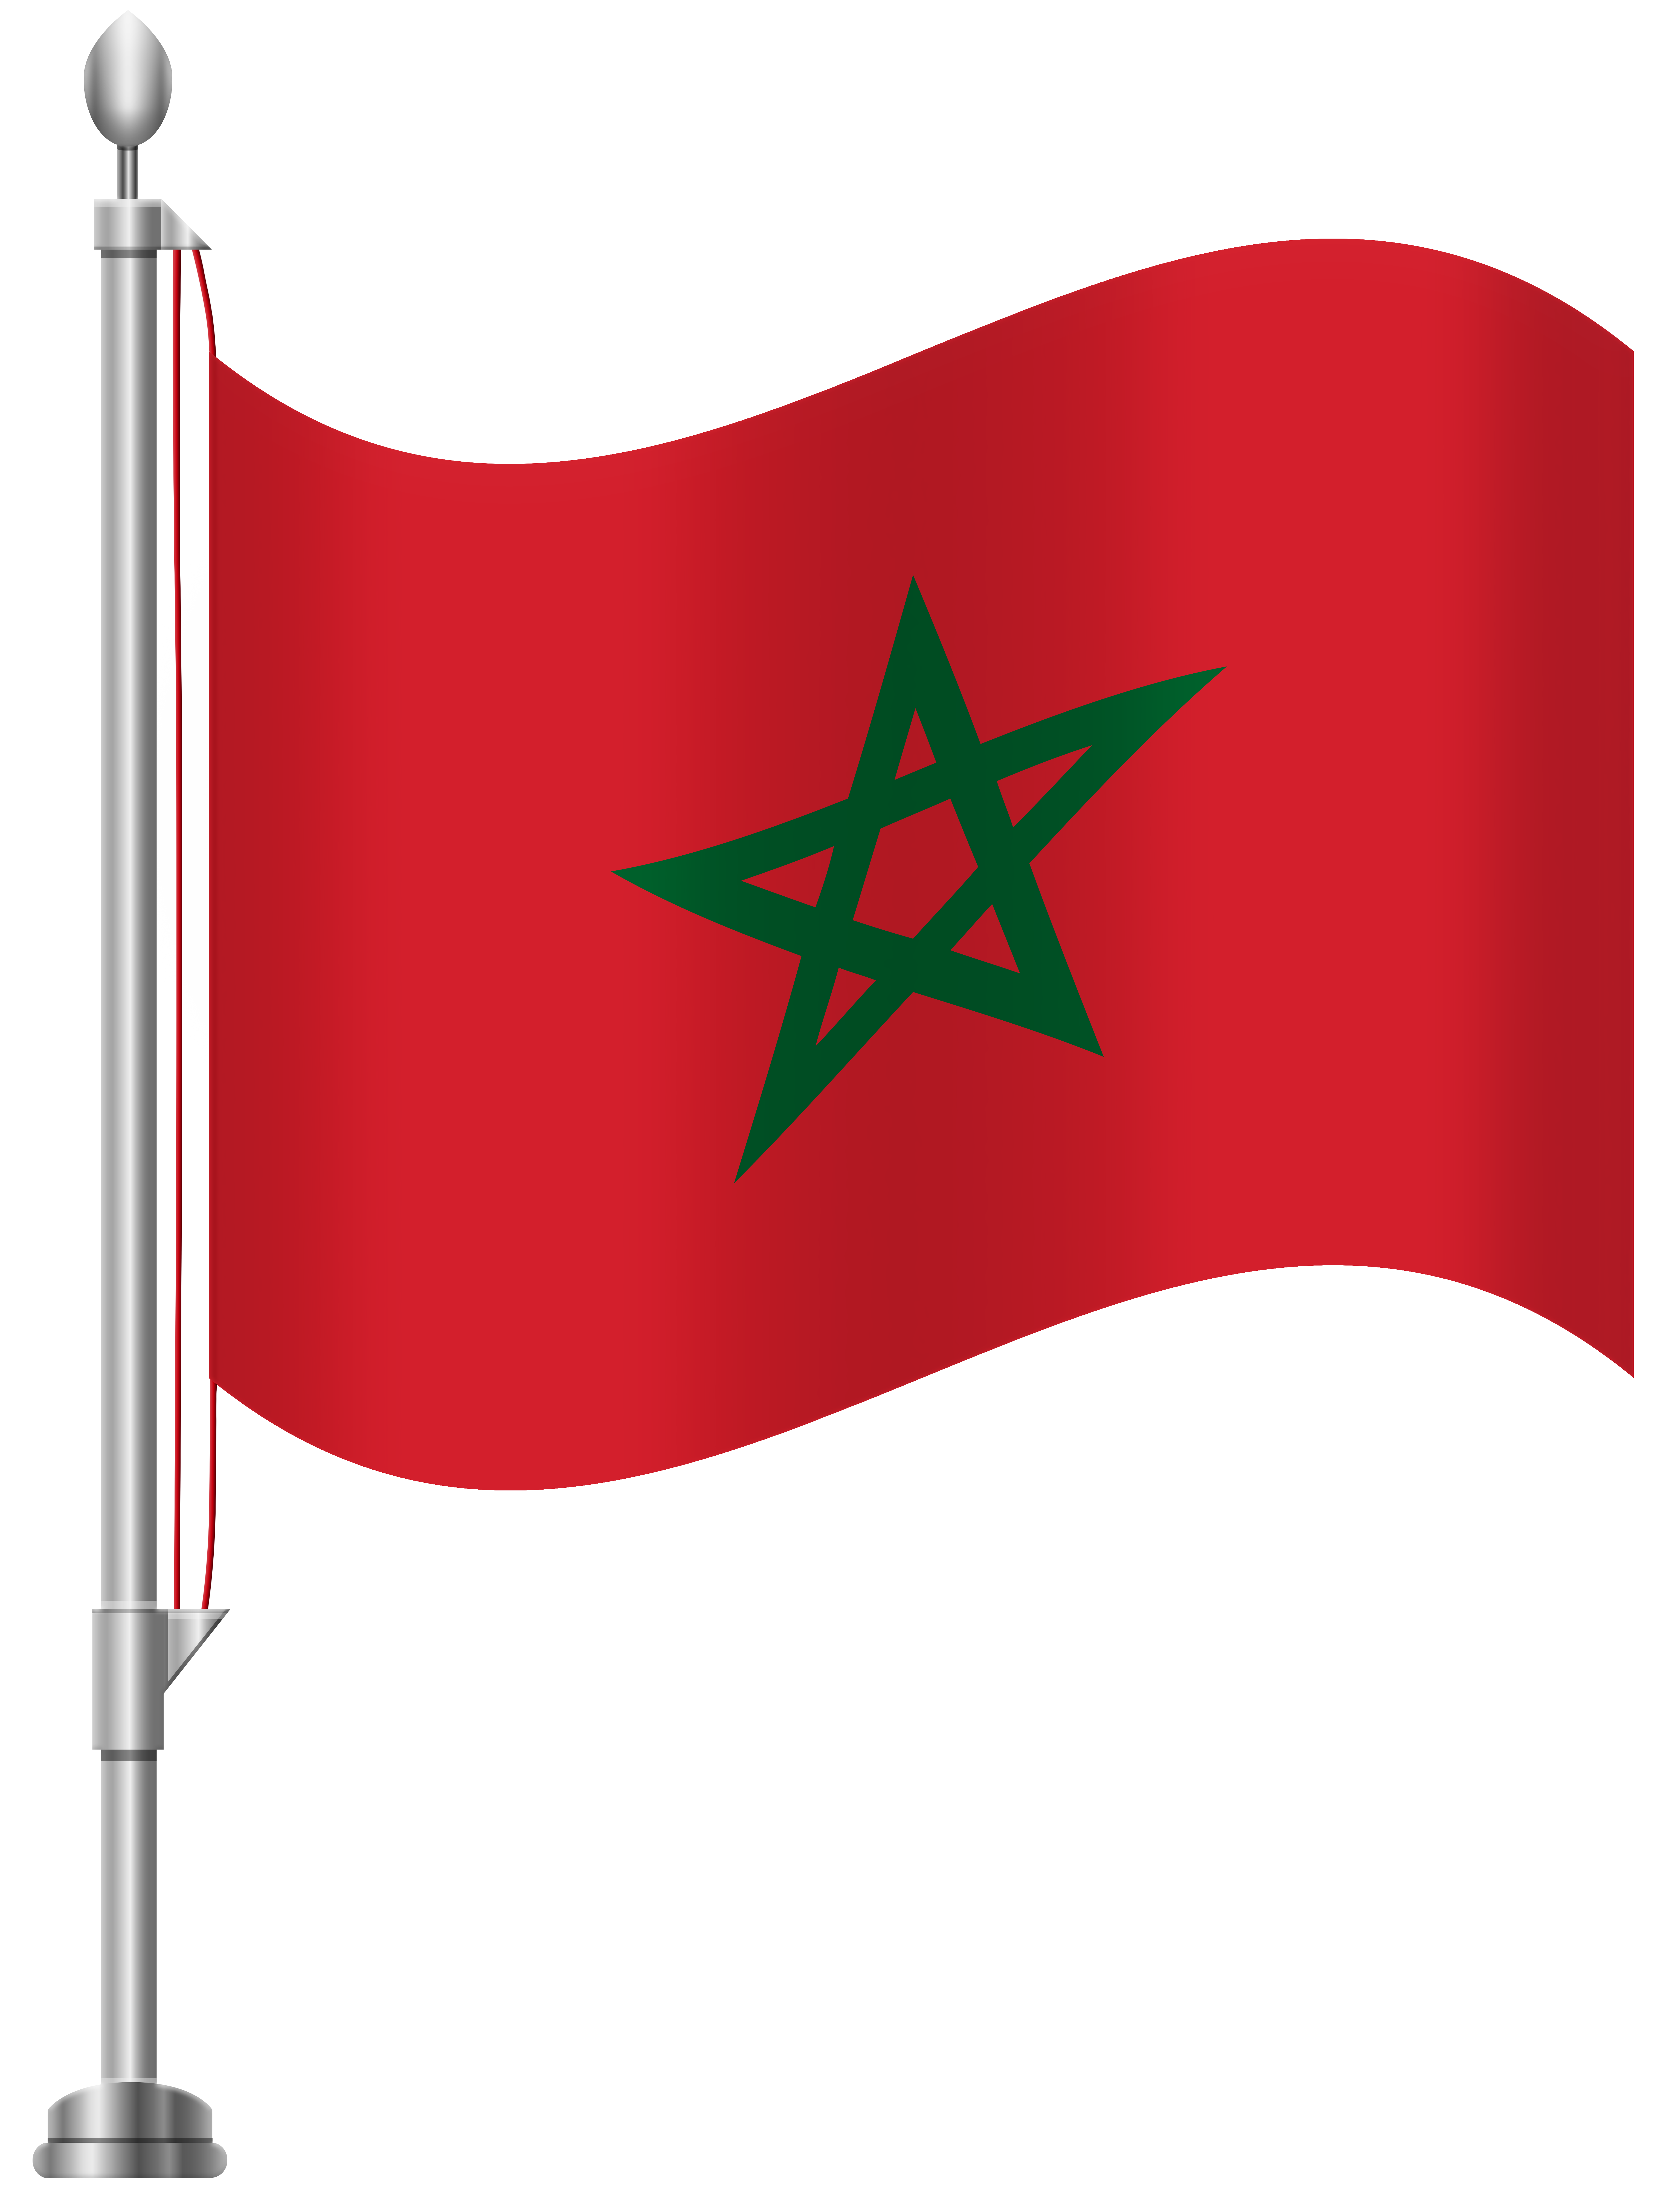 Morocco clipart #1, Download drawings